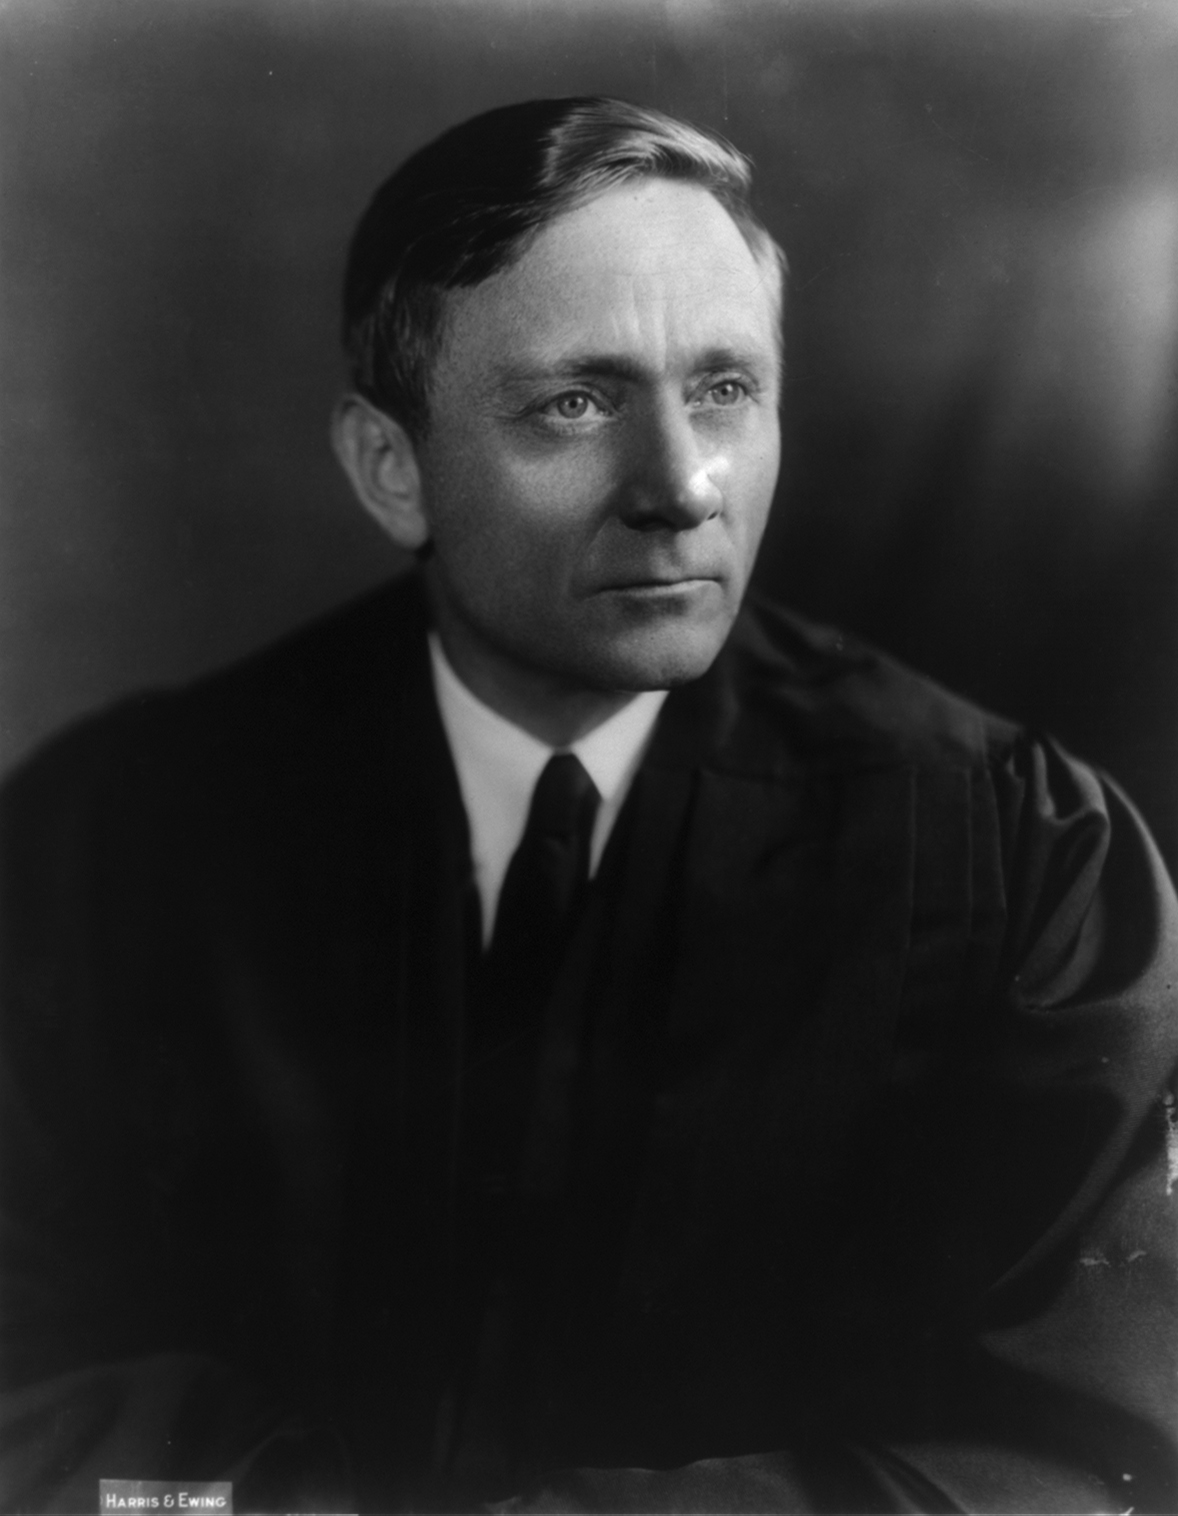 Justice William O. Douglas understood the true meaning of free speech.